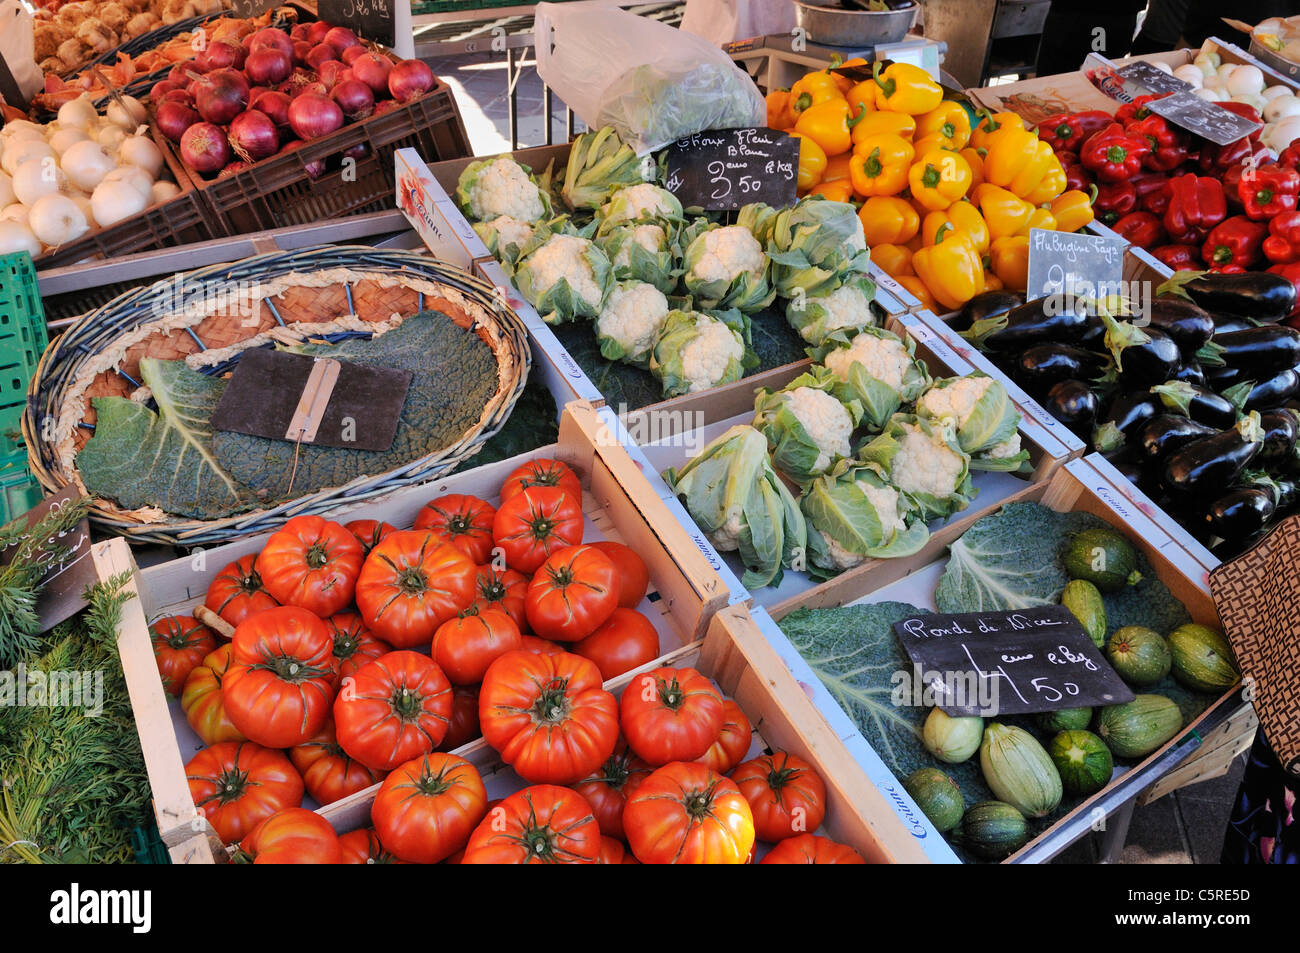 Europe, France, Provence, Alpes Maritimes, Cote d'Azur, Nice, Various fresh vegetables on market stall - Stock Image